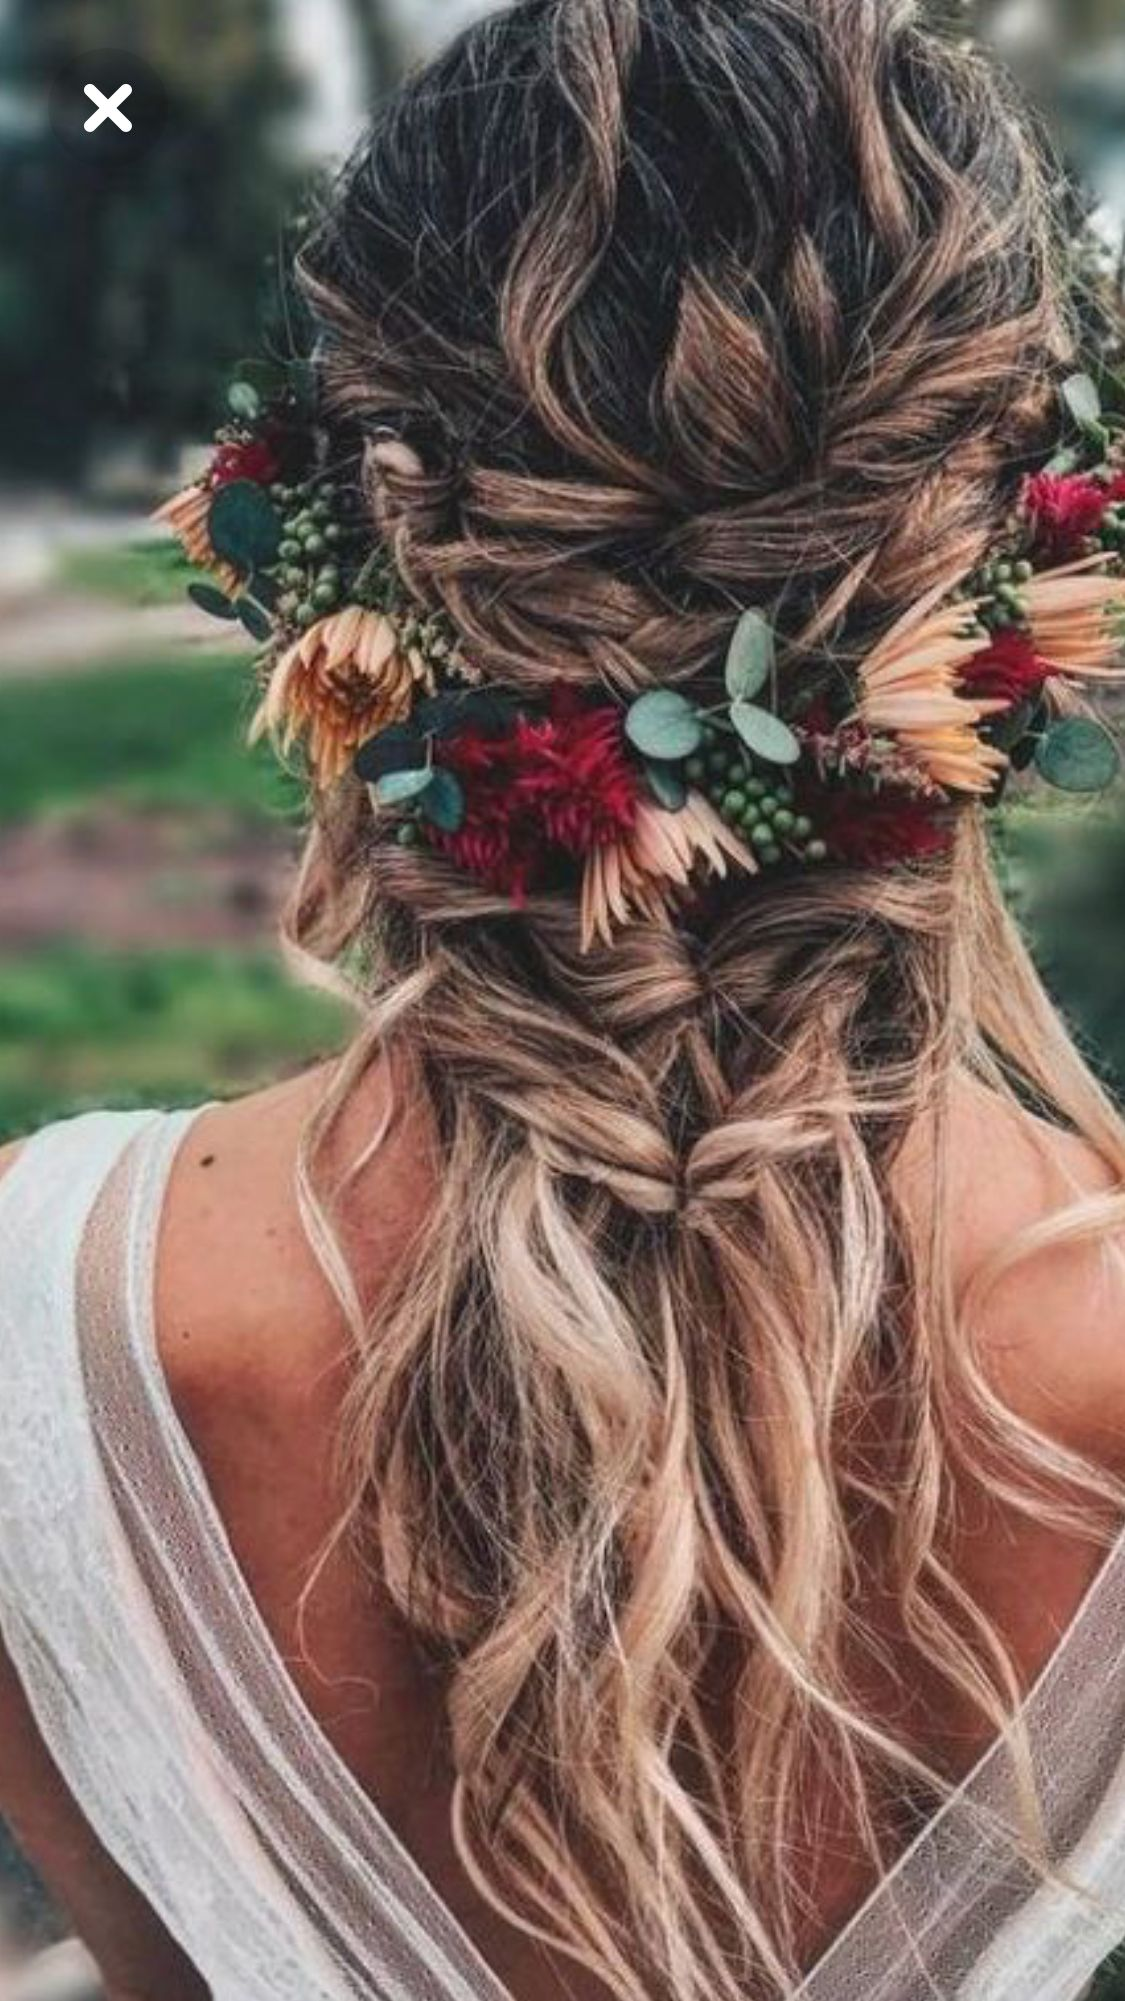 berries and burgundy blooms for a flower crown that blends